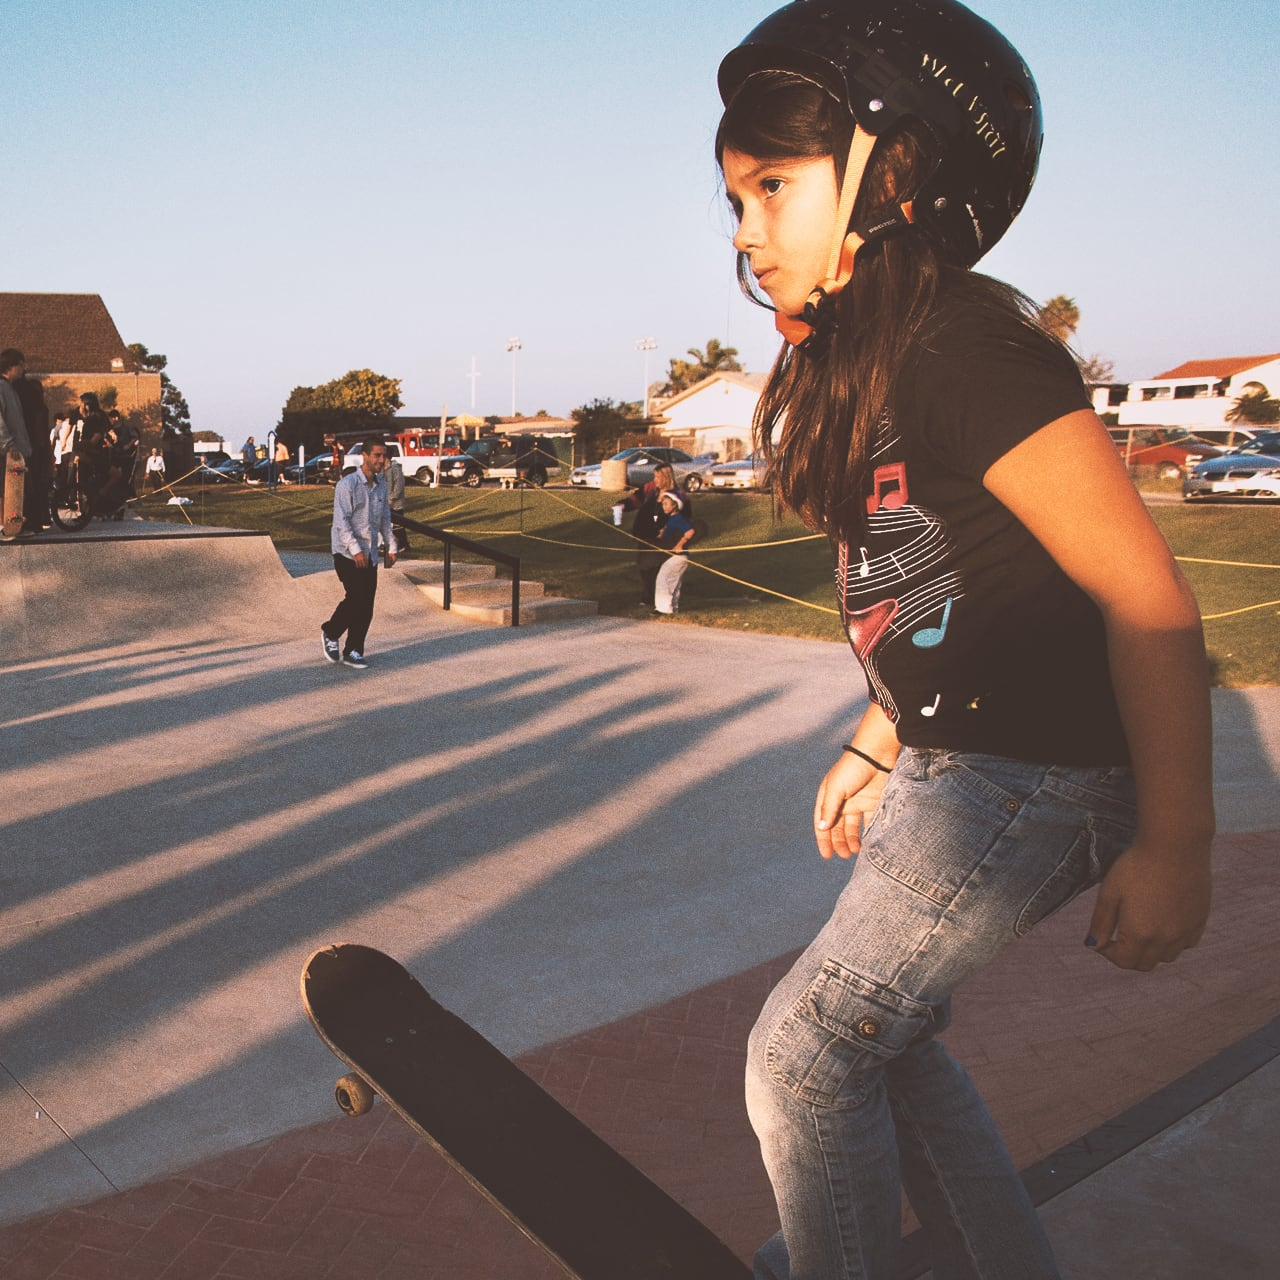 Image of girl ready to skateboard.